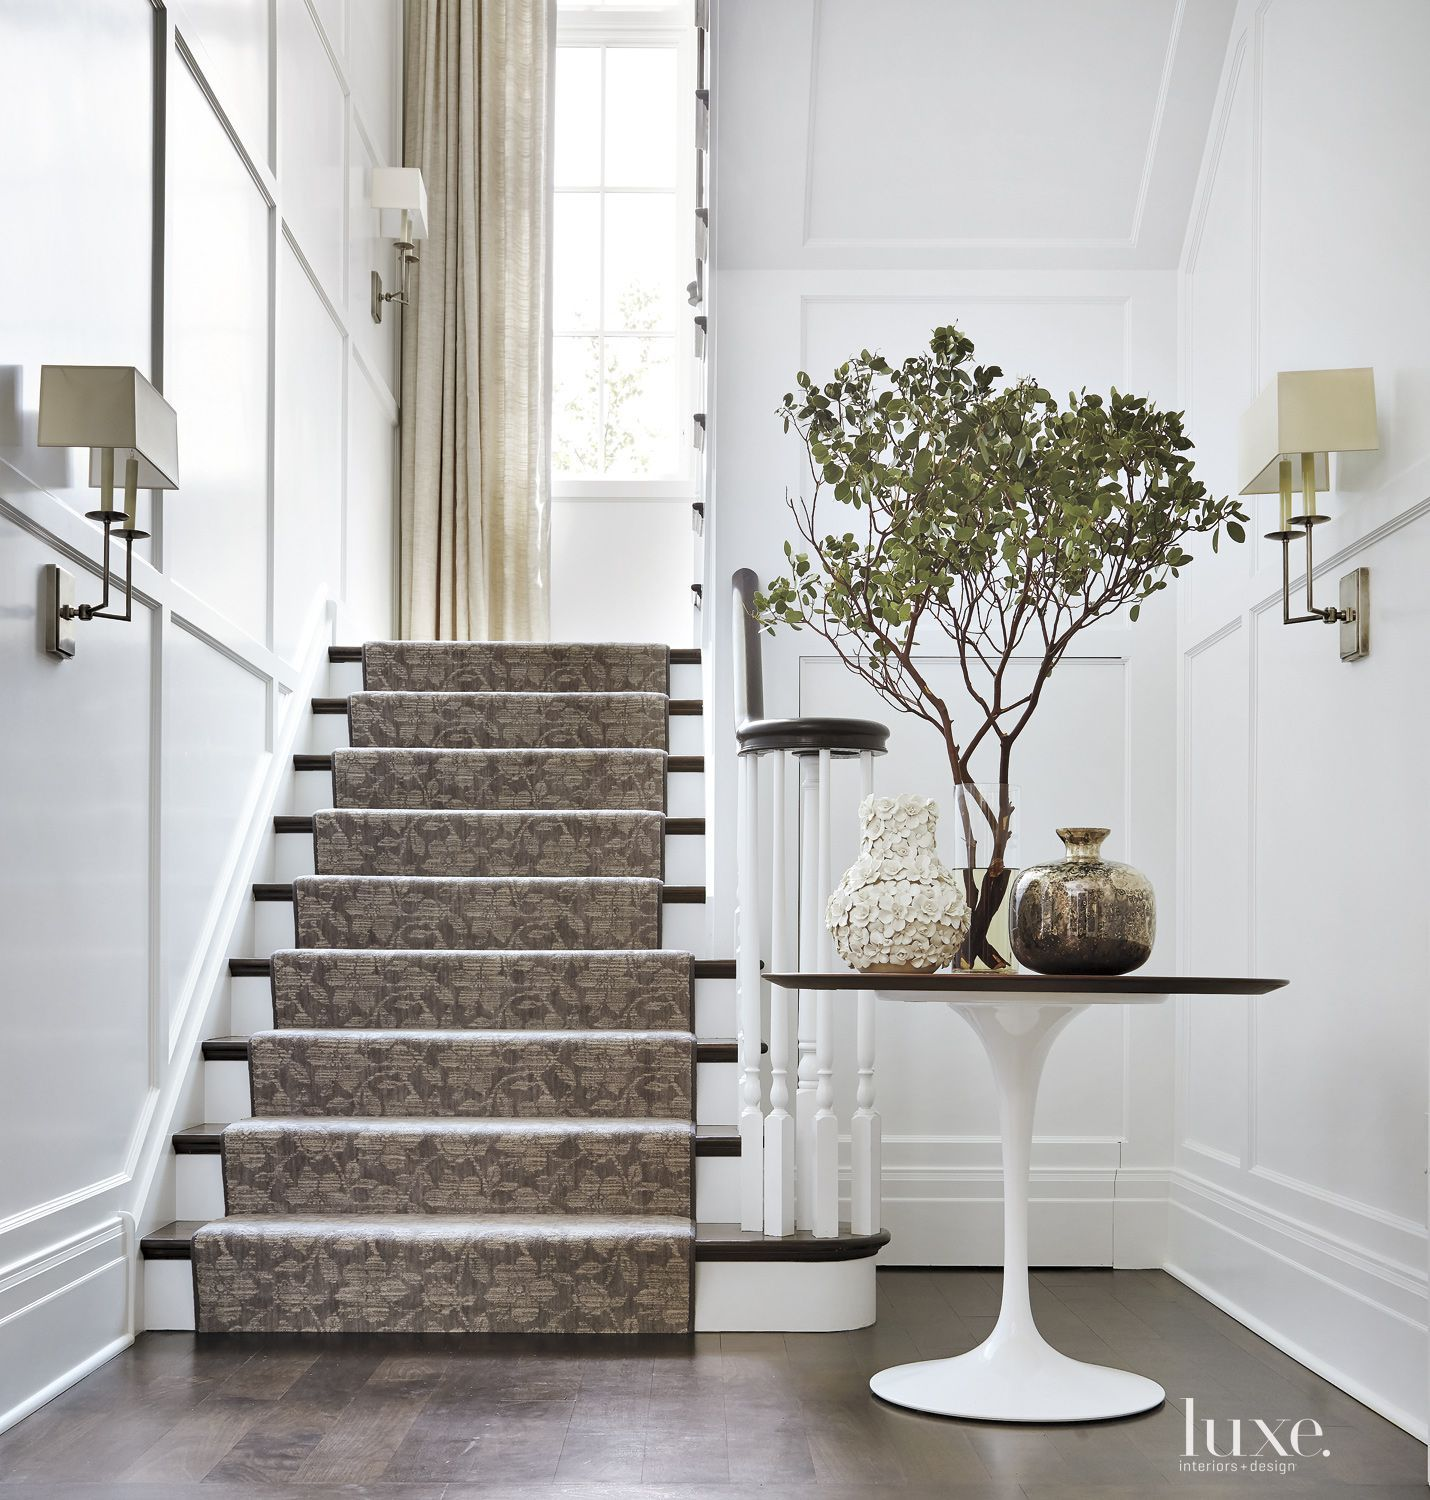 Creative Tonic Loves The Runner Installation Luxedaily Design Insight From The Editors Of Luxe Interiors Home Stairs Design Stairs Design White Staircase